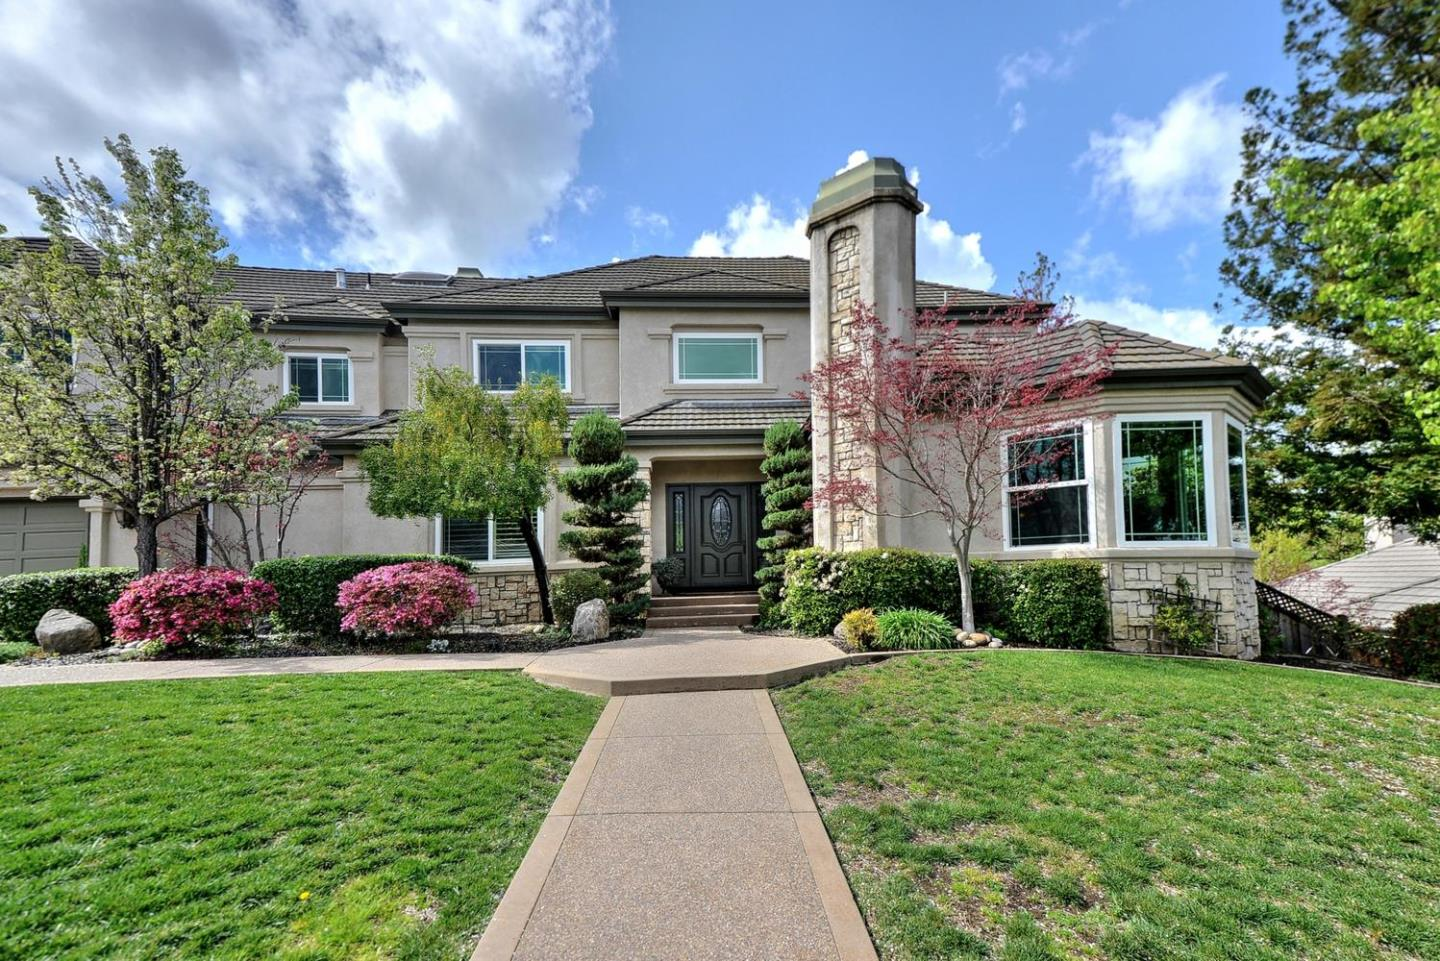 Additional photo for property listing at 4129 Grant Ct  PLEASANTON, CALIFORNIA 94566